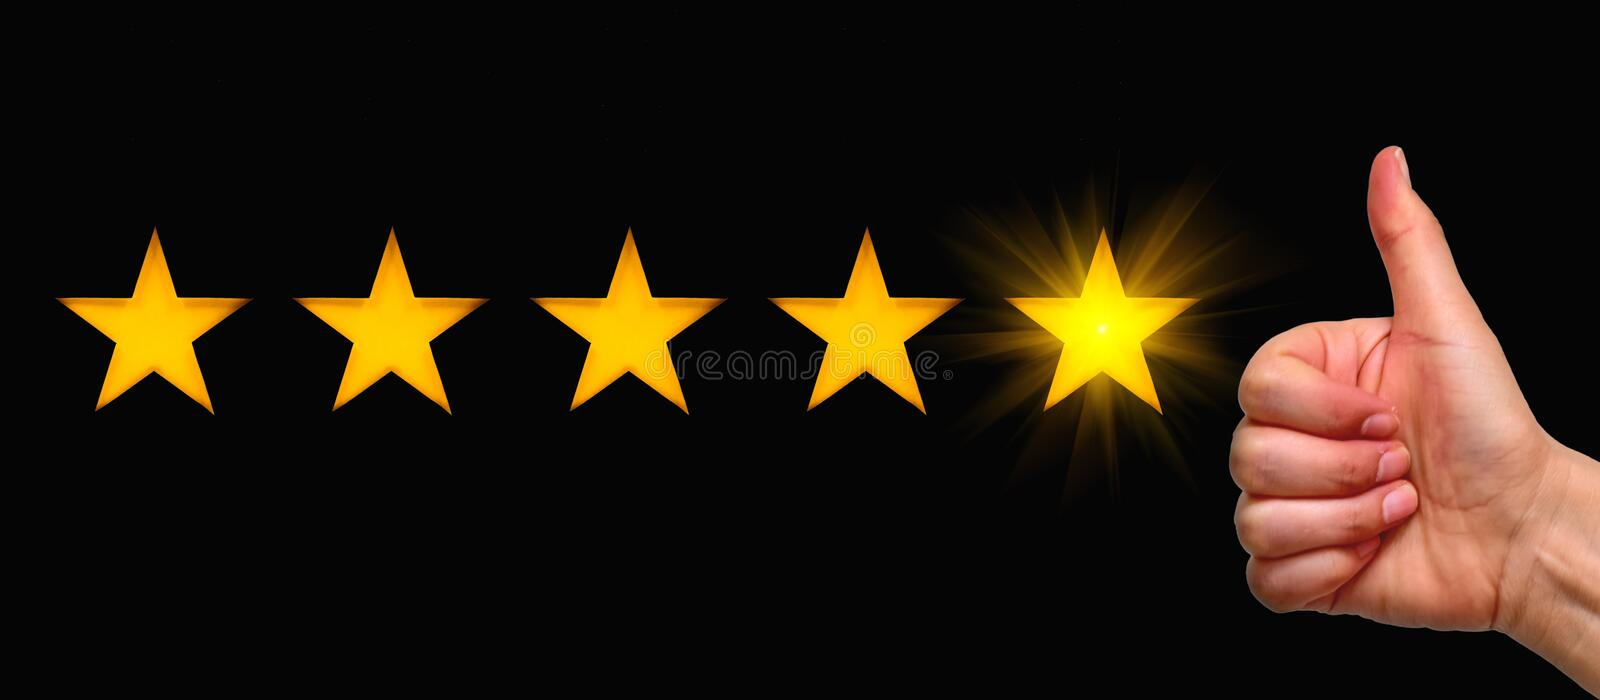 A woman showing hand sign thumb up and five star symbol, the concept of a positive rating, reviews and feedback. Black background stock photography